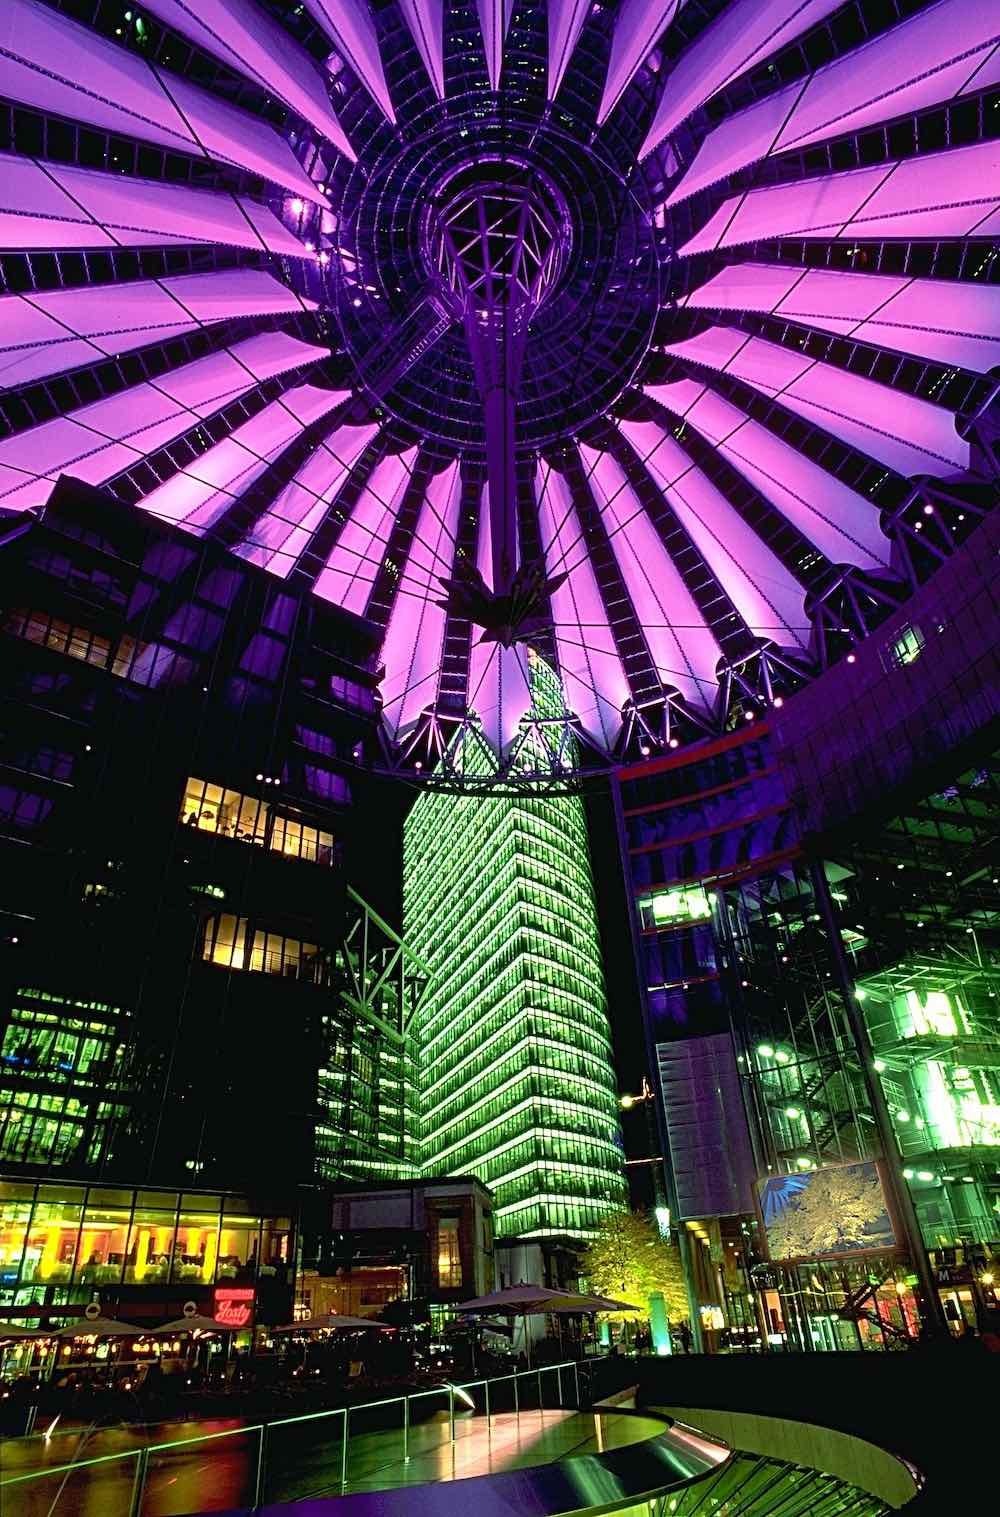 Sony Center by Helmut Jahn in Berlin, 2000 - Photo by Andreas Tille